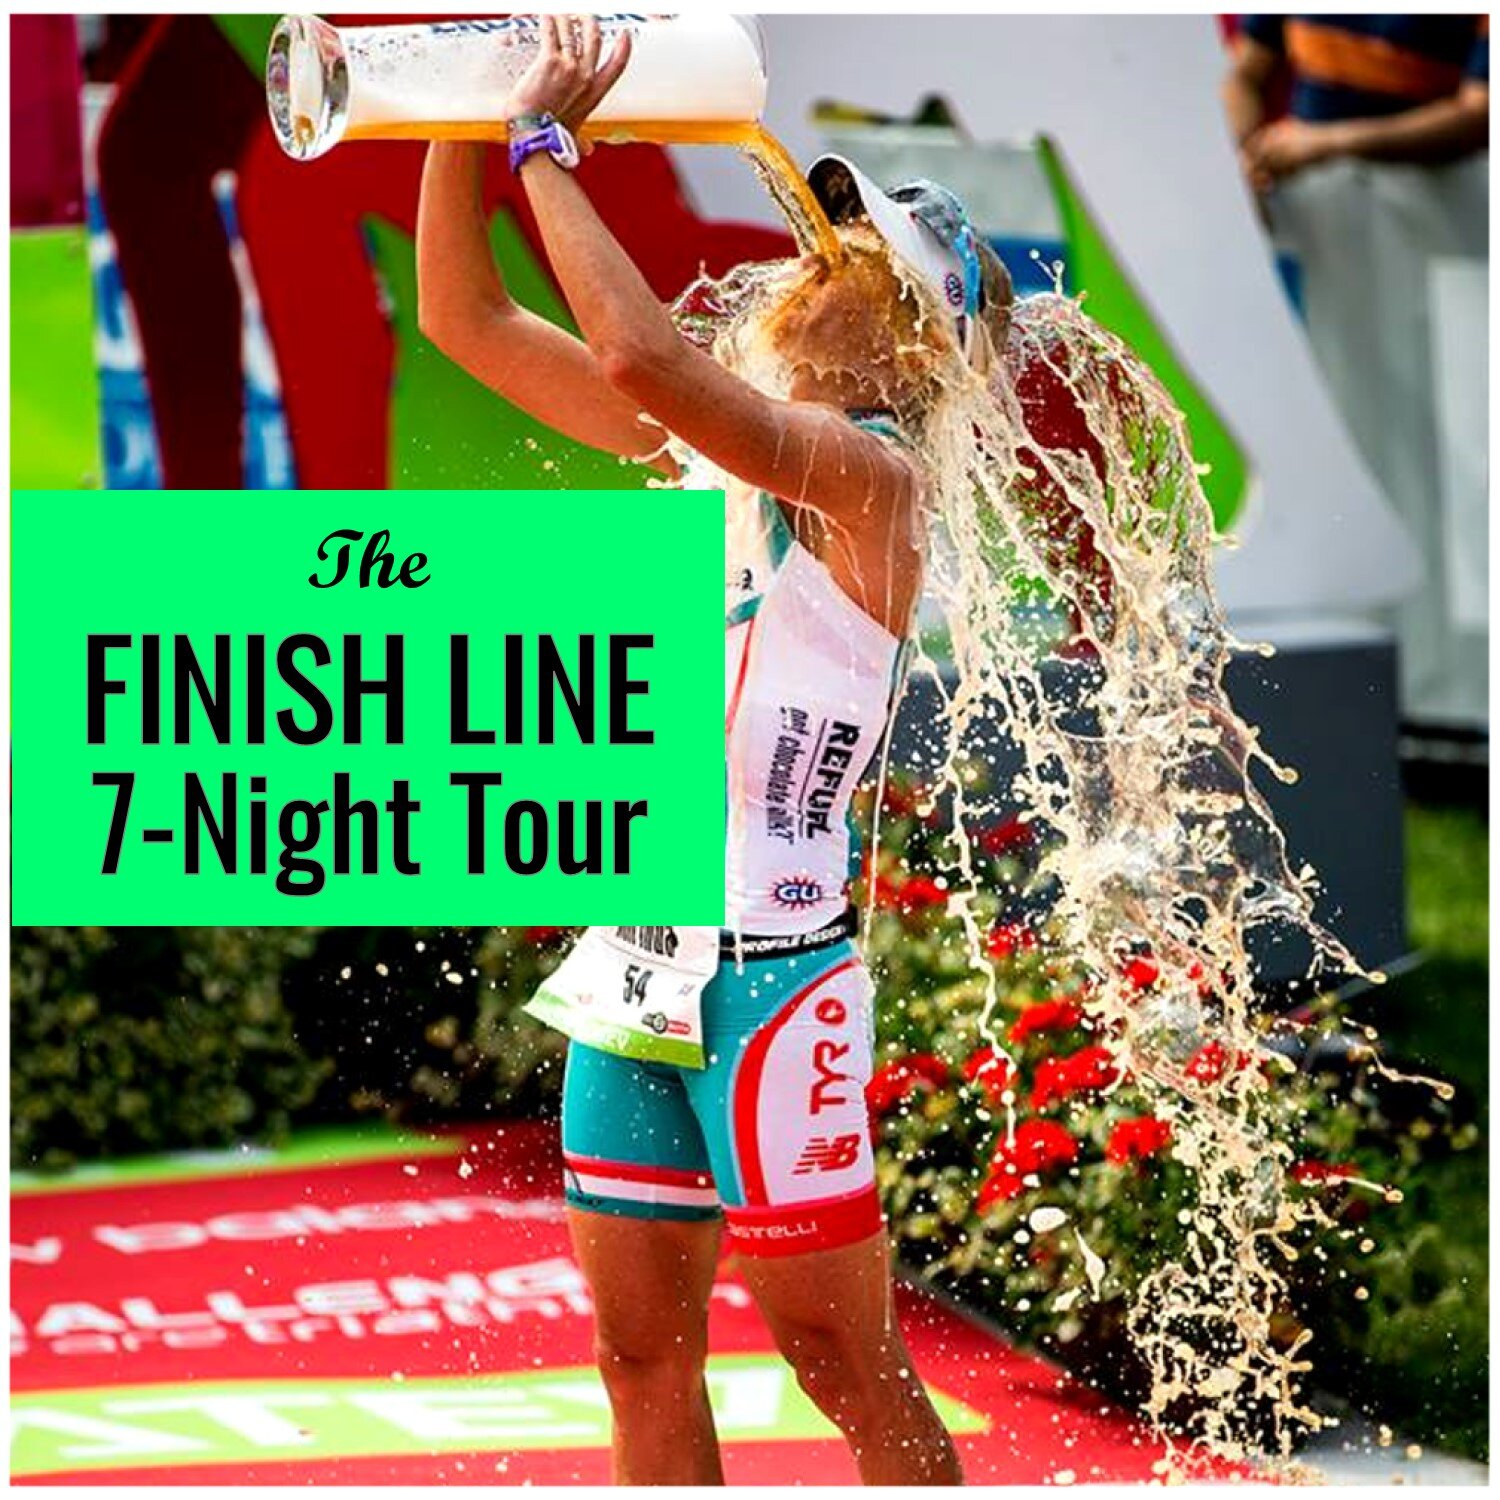 Challenge Roth Finish Line - Race Entry Access7-Nights in 4* Roth HotelSteps from the Roth finish line!Daily BreakfastVIP Challenge Roth Tour ServicesUltimate Challenge Roth experienceCLICK HERE FOR DETAILS